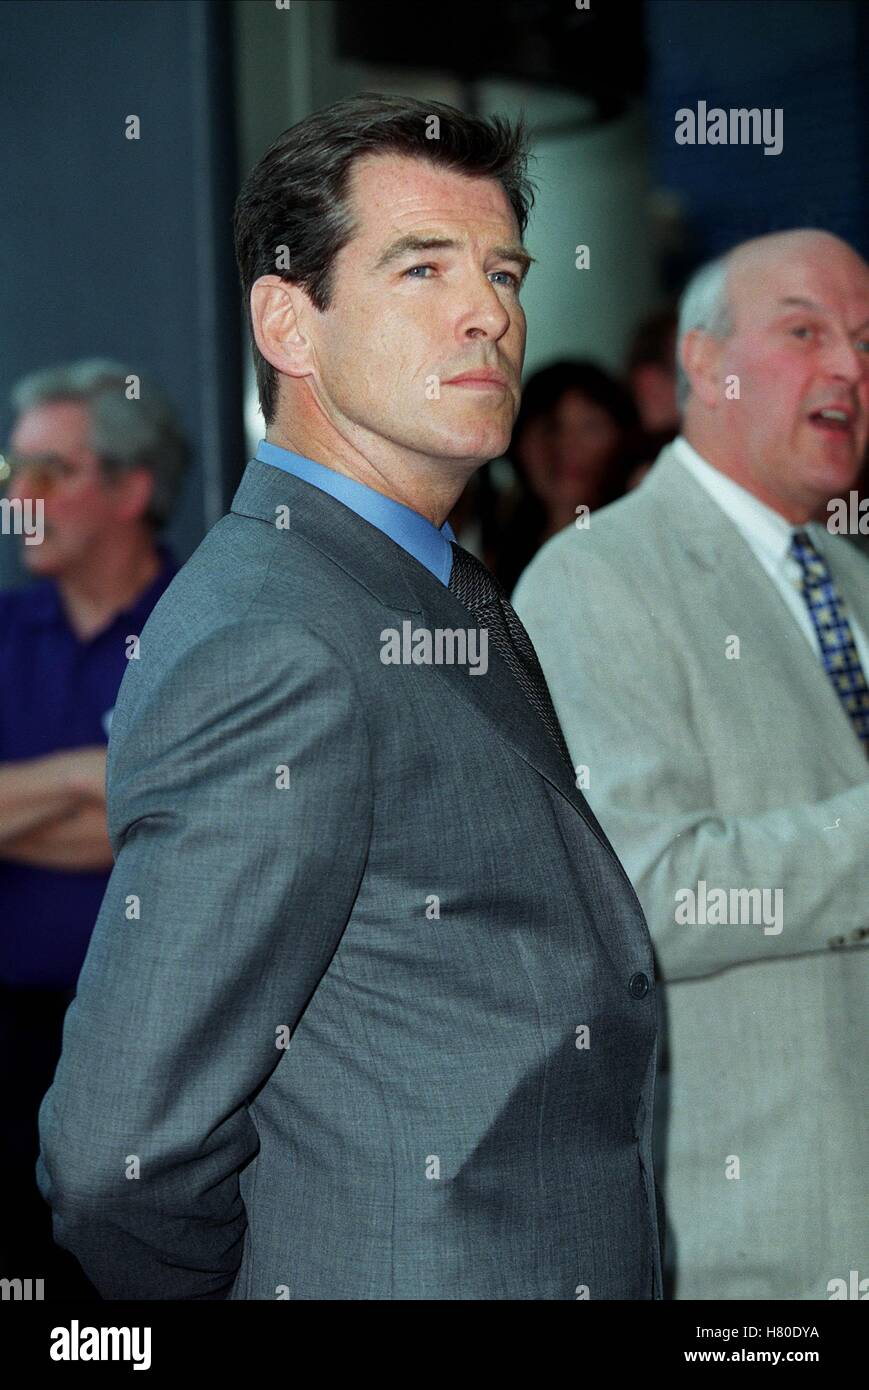 Brosnan Stock Photos & Brosnan Stock Images - Page 3 - Alamy